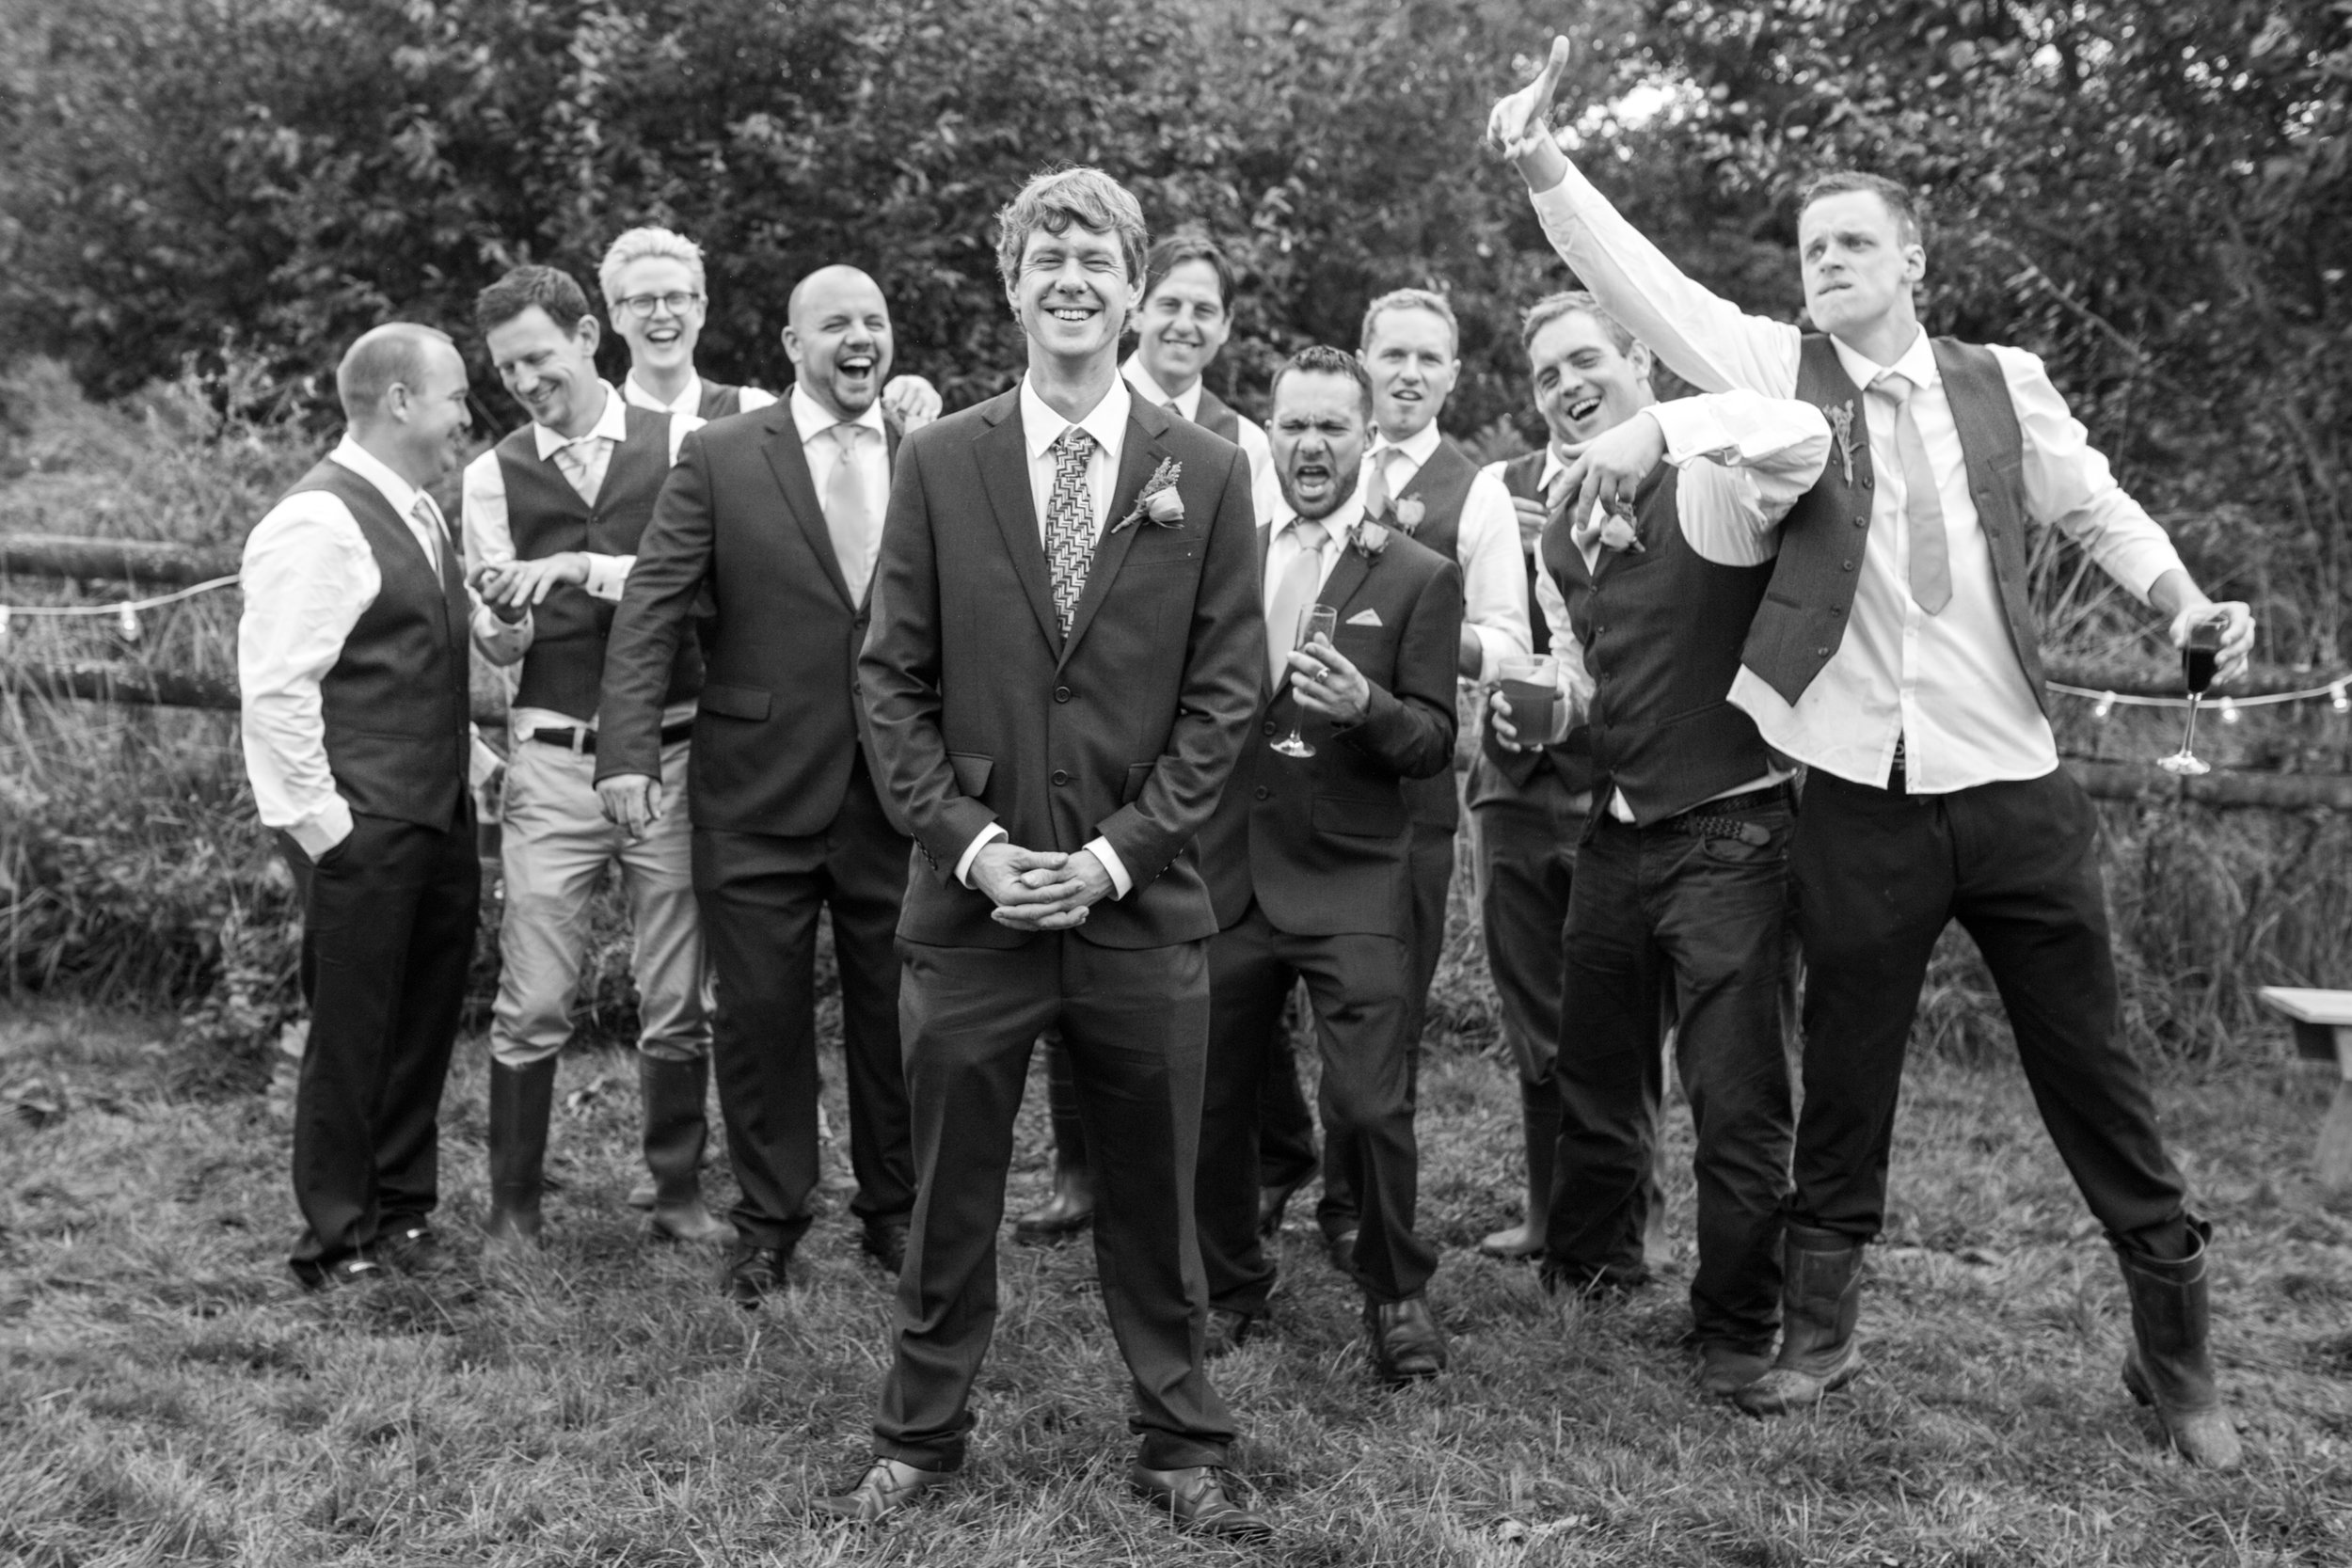 The boys, alternative UK wedding